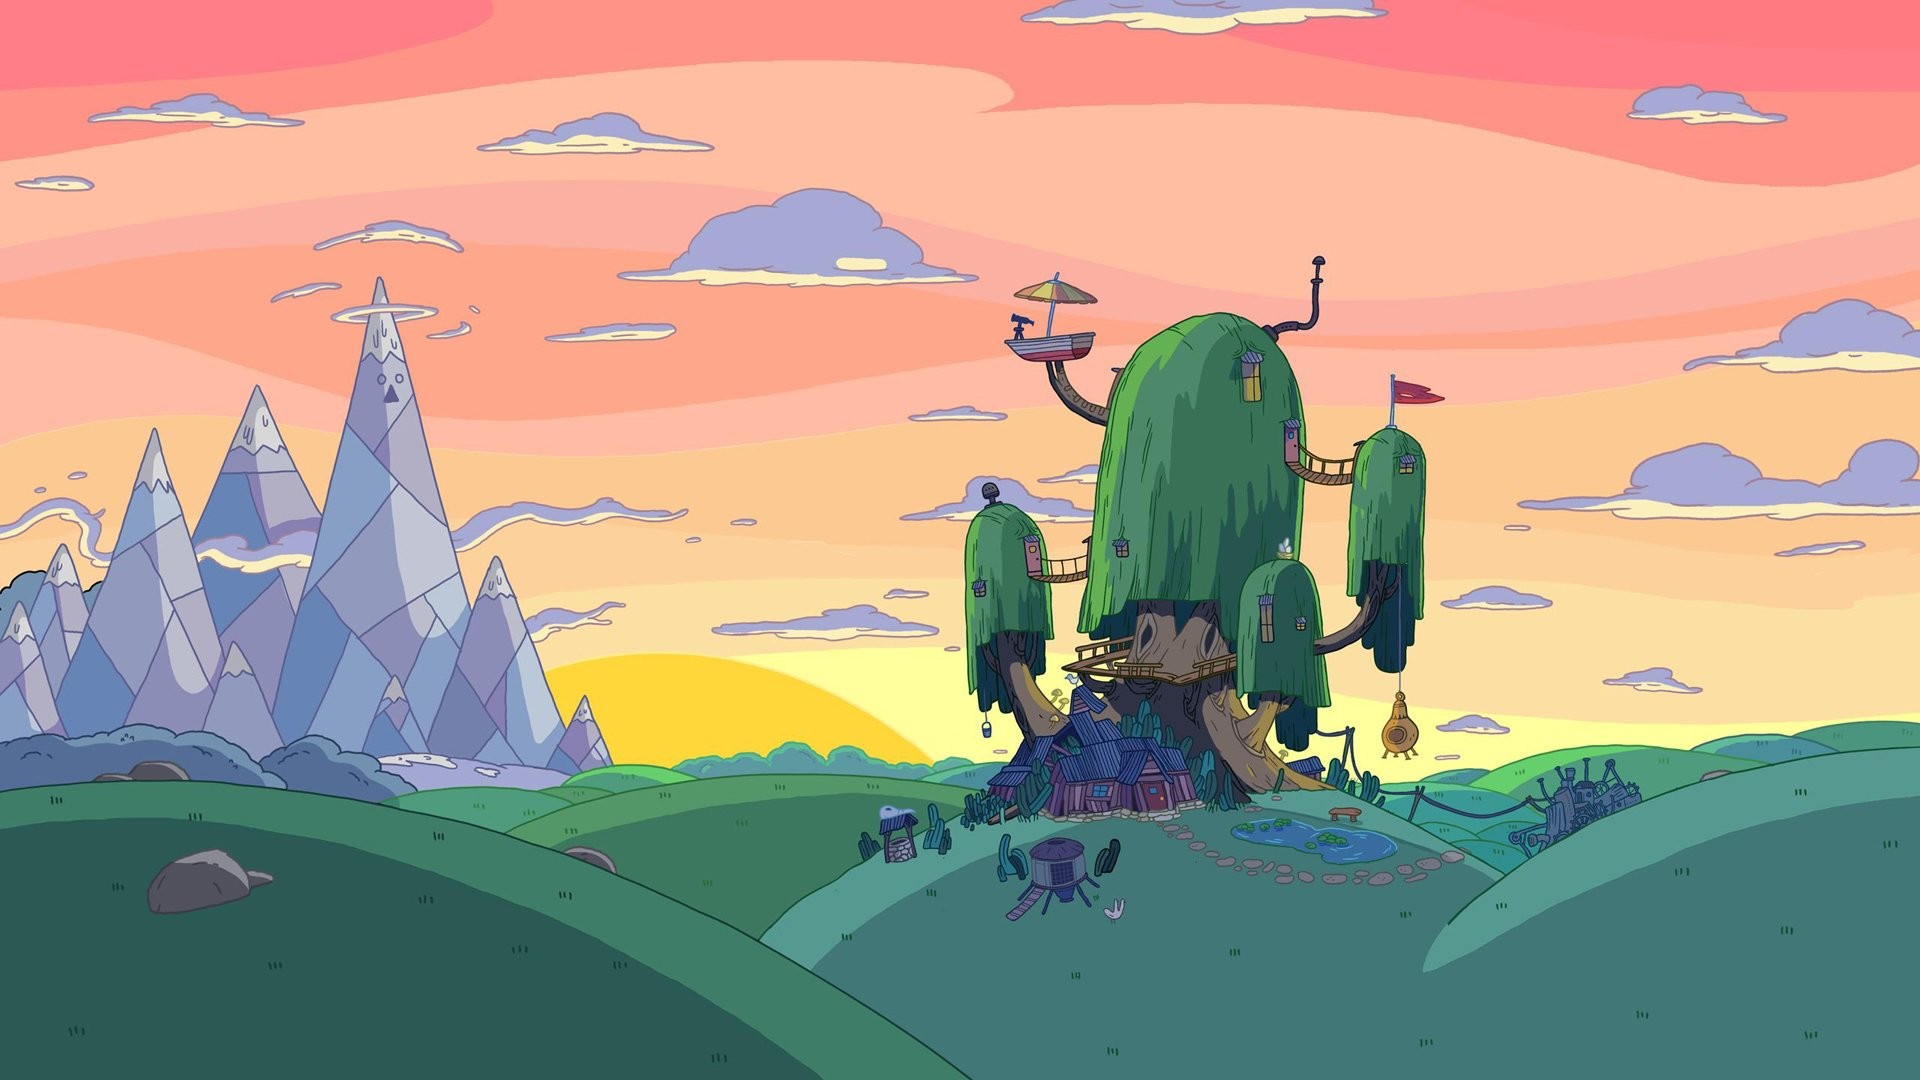 Adventure Time Backgrounds 69 images 1920x1080